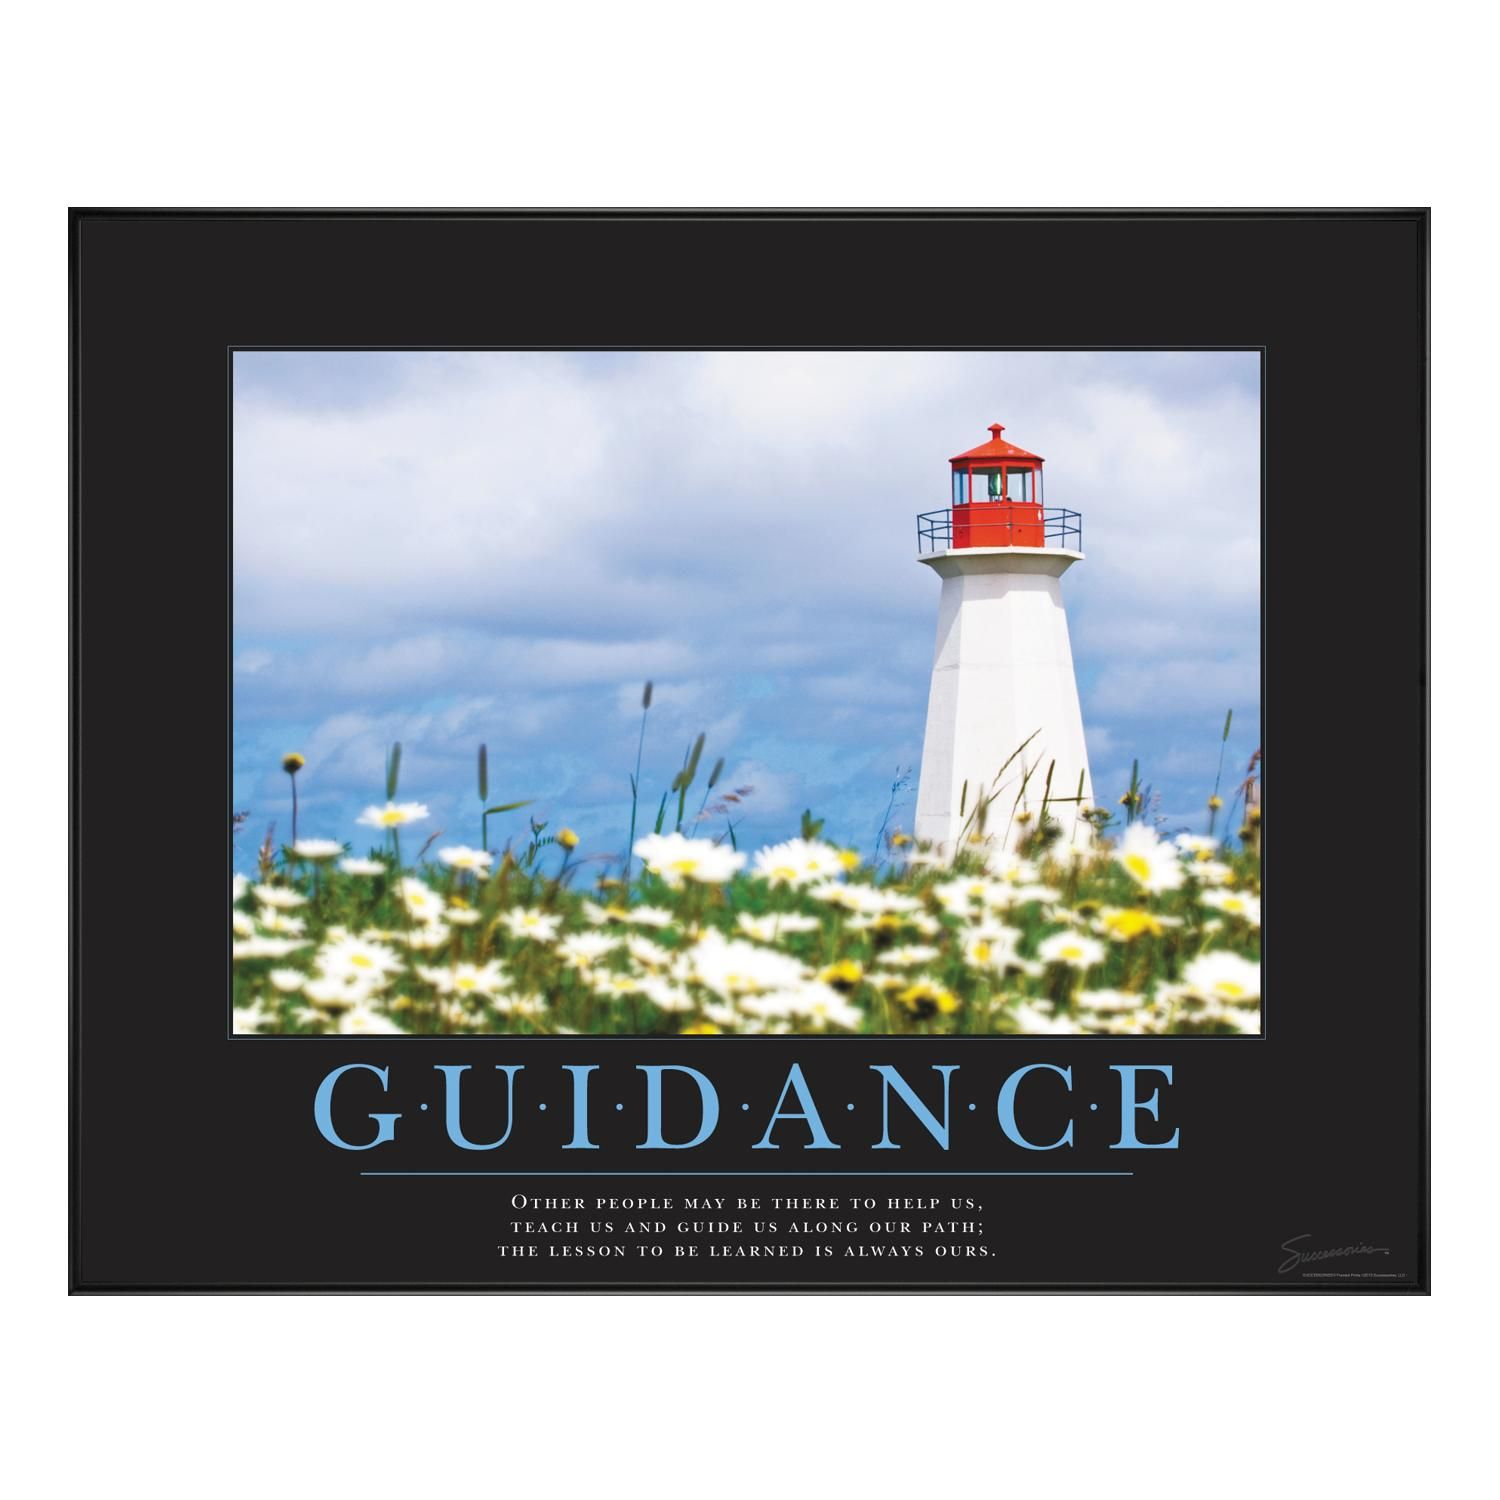 Guidance Lighthouse Motivational Poster By Successories Classic